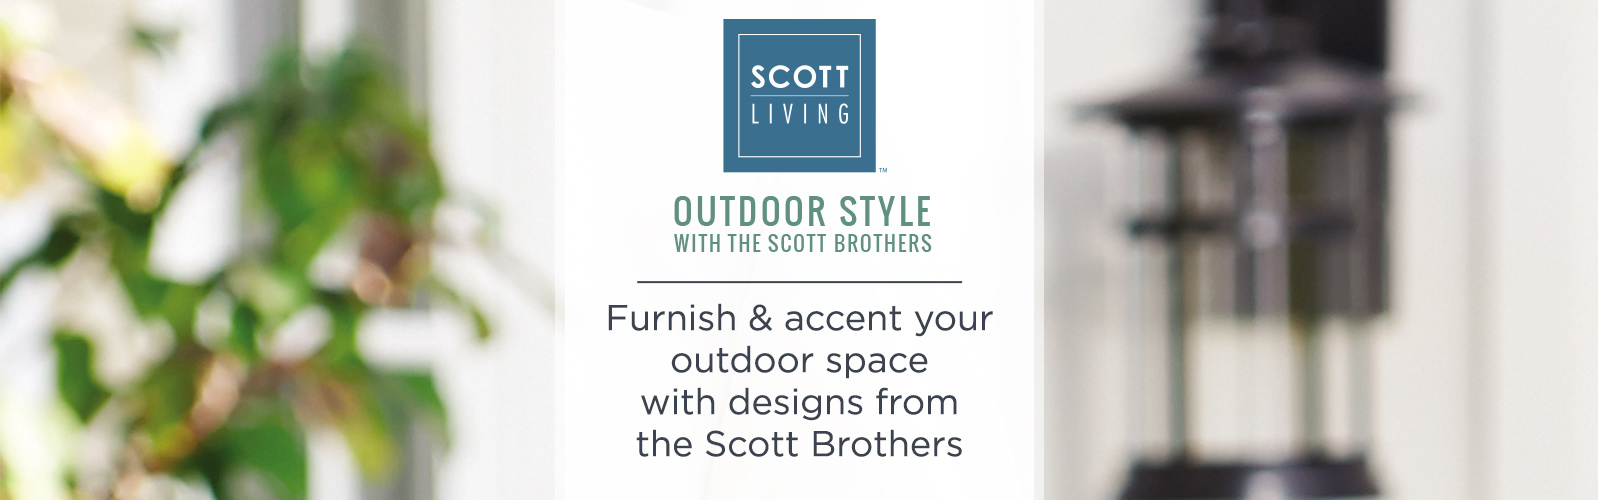 Scott living furnish accent your outdoor space with designs from the scott brothers